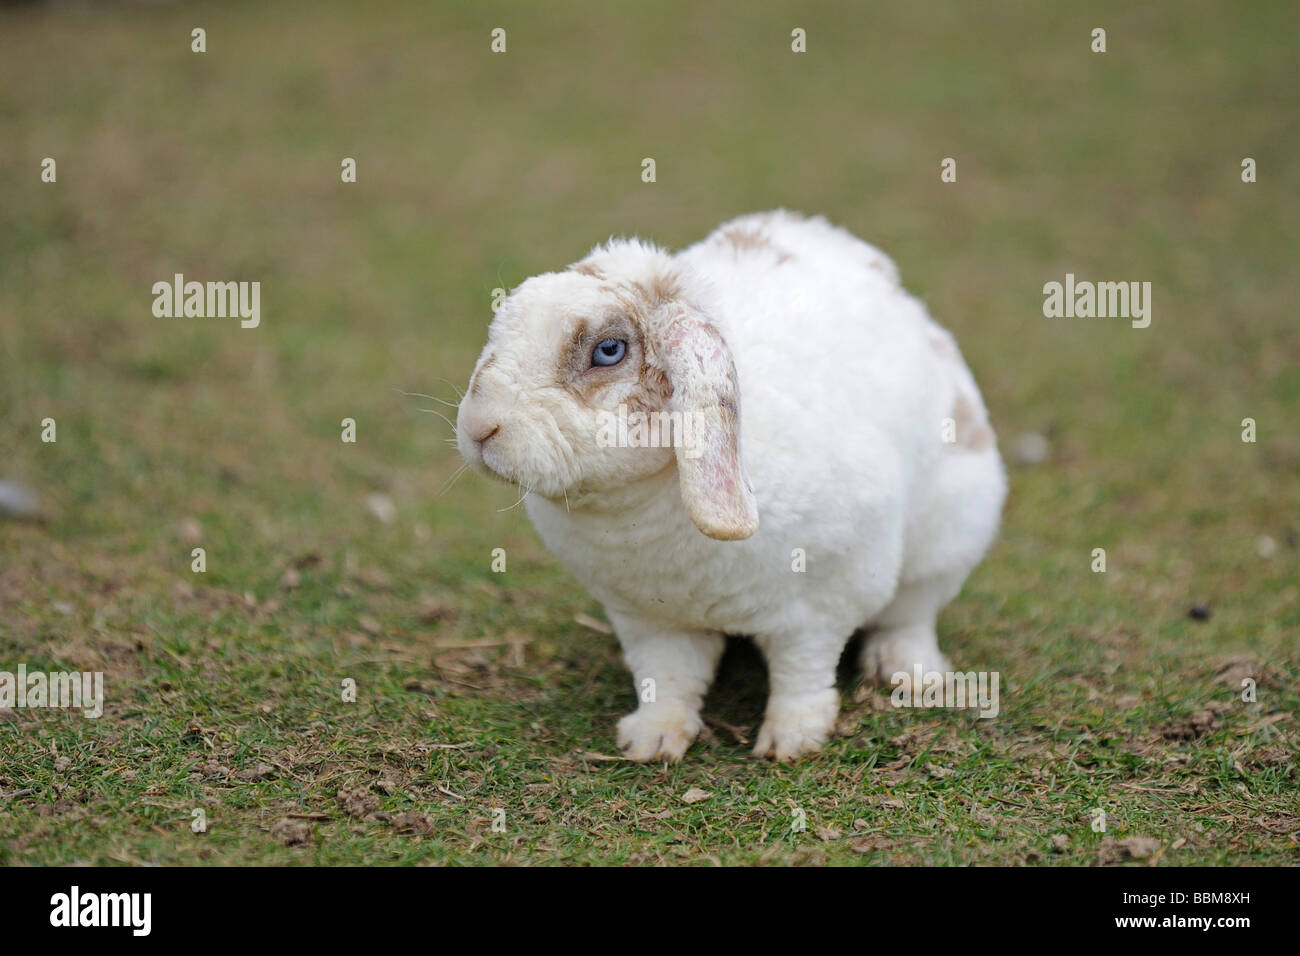 Dwarf rabbit, domestic rabbit with floppy ears, on a meadow - Stock Image